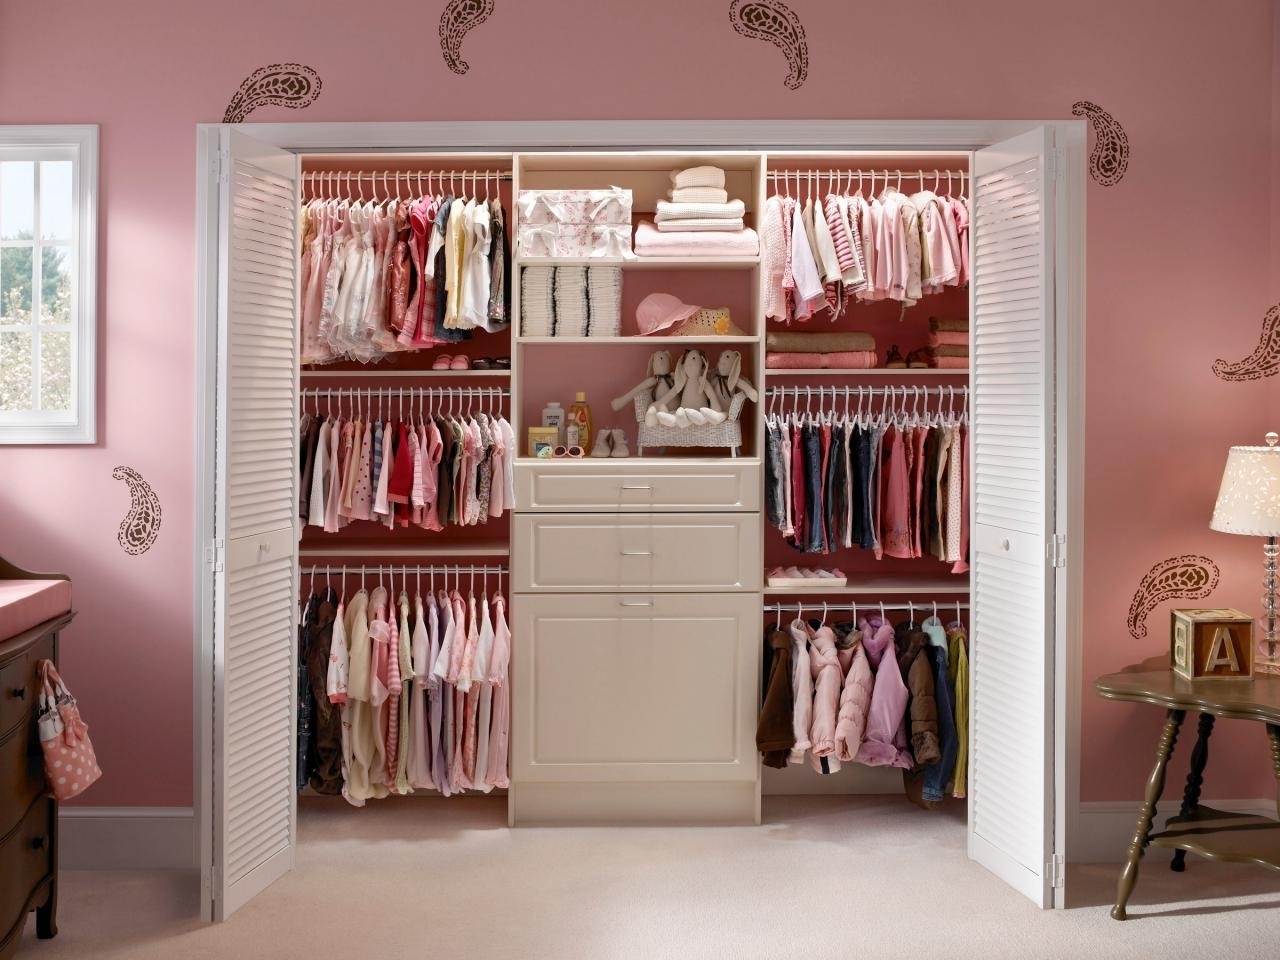 Hgtv Within Most Current Wardrobes For Baby Clothes (View 3 of 15)